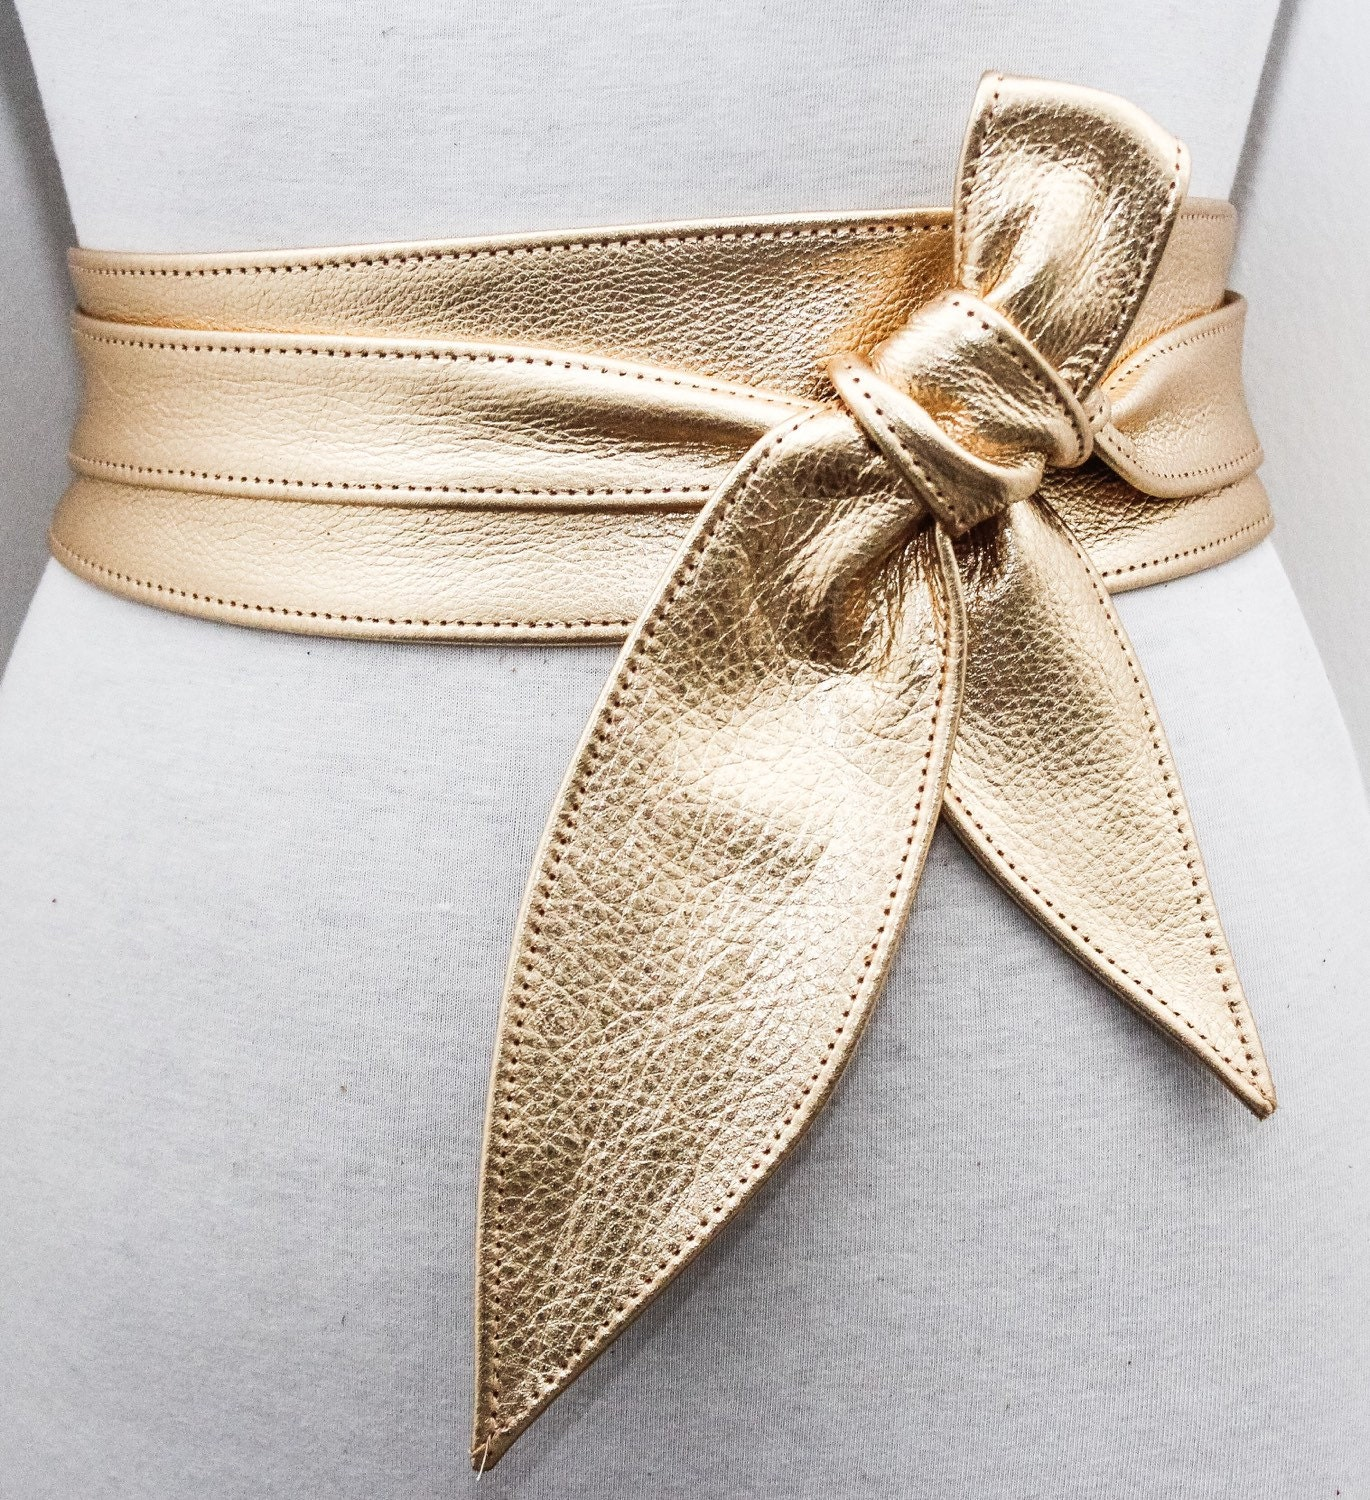 Free shipping BOTH ways on gold belt, from our vast selection of styles. Fast delivery, and 24/7/ real-person service with a smile. Click or call